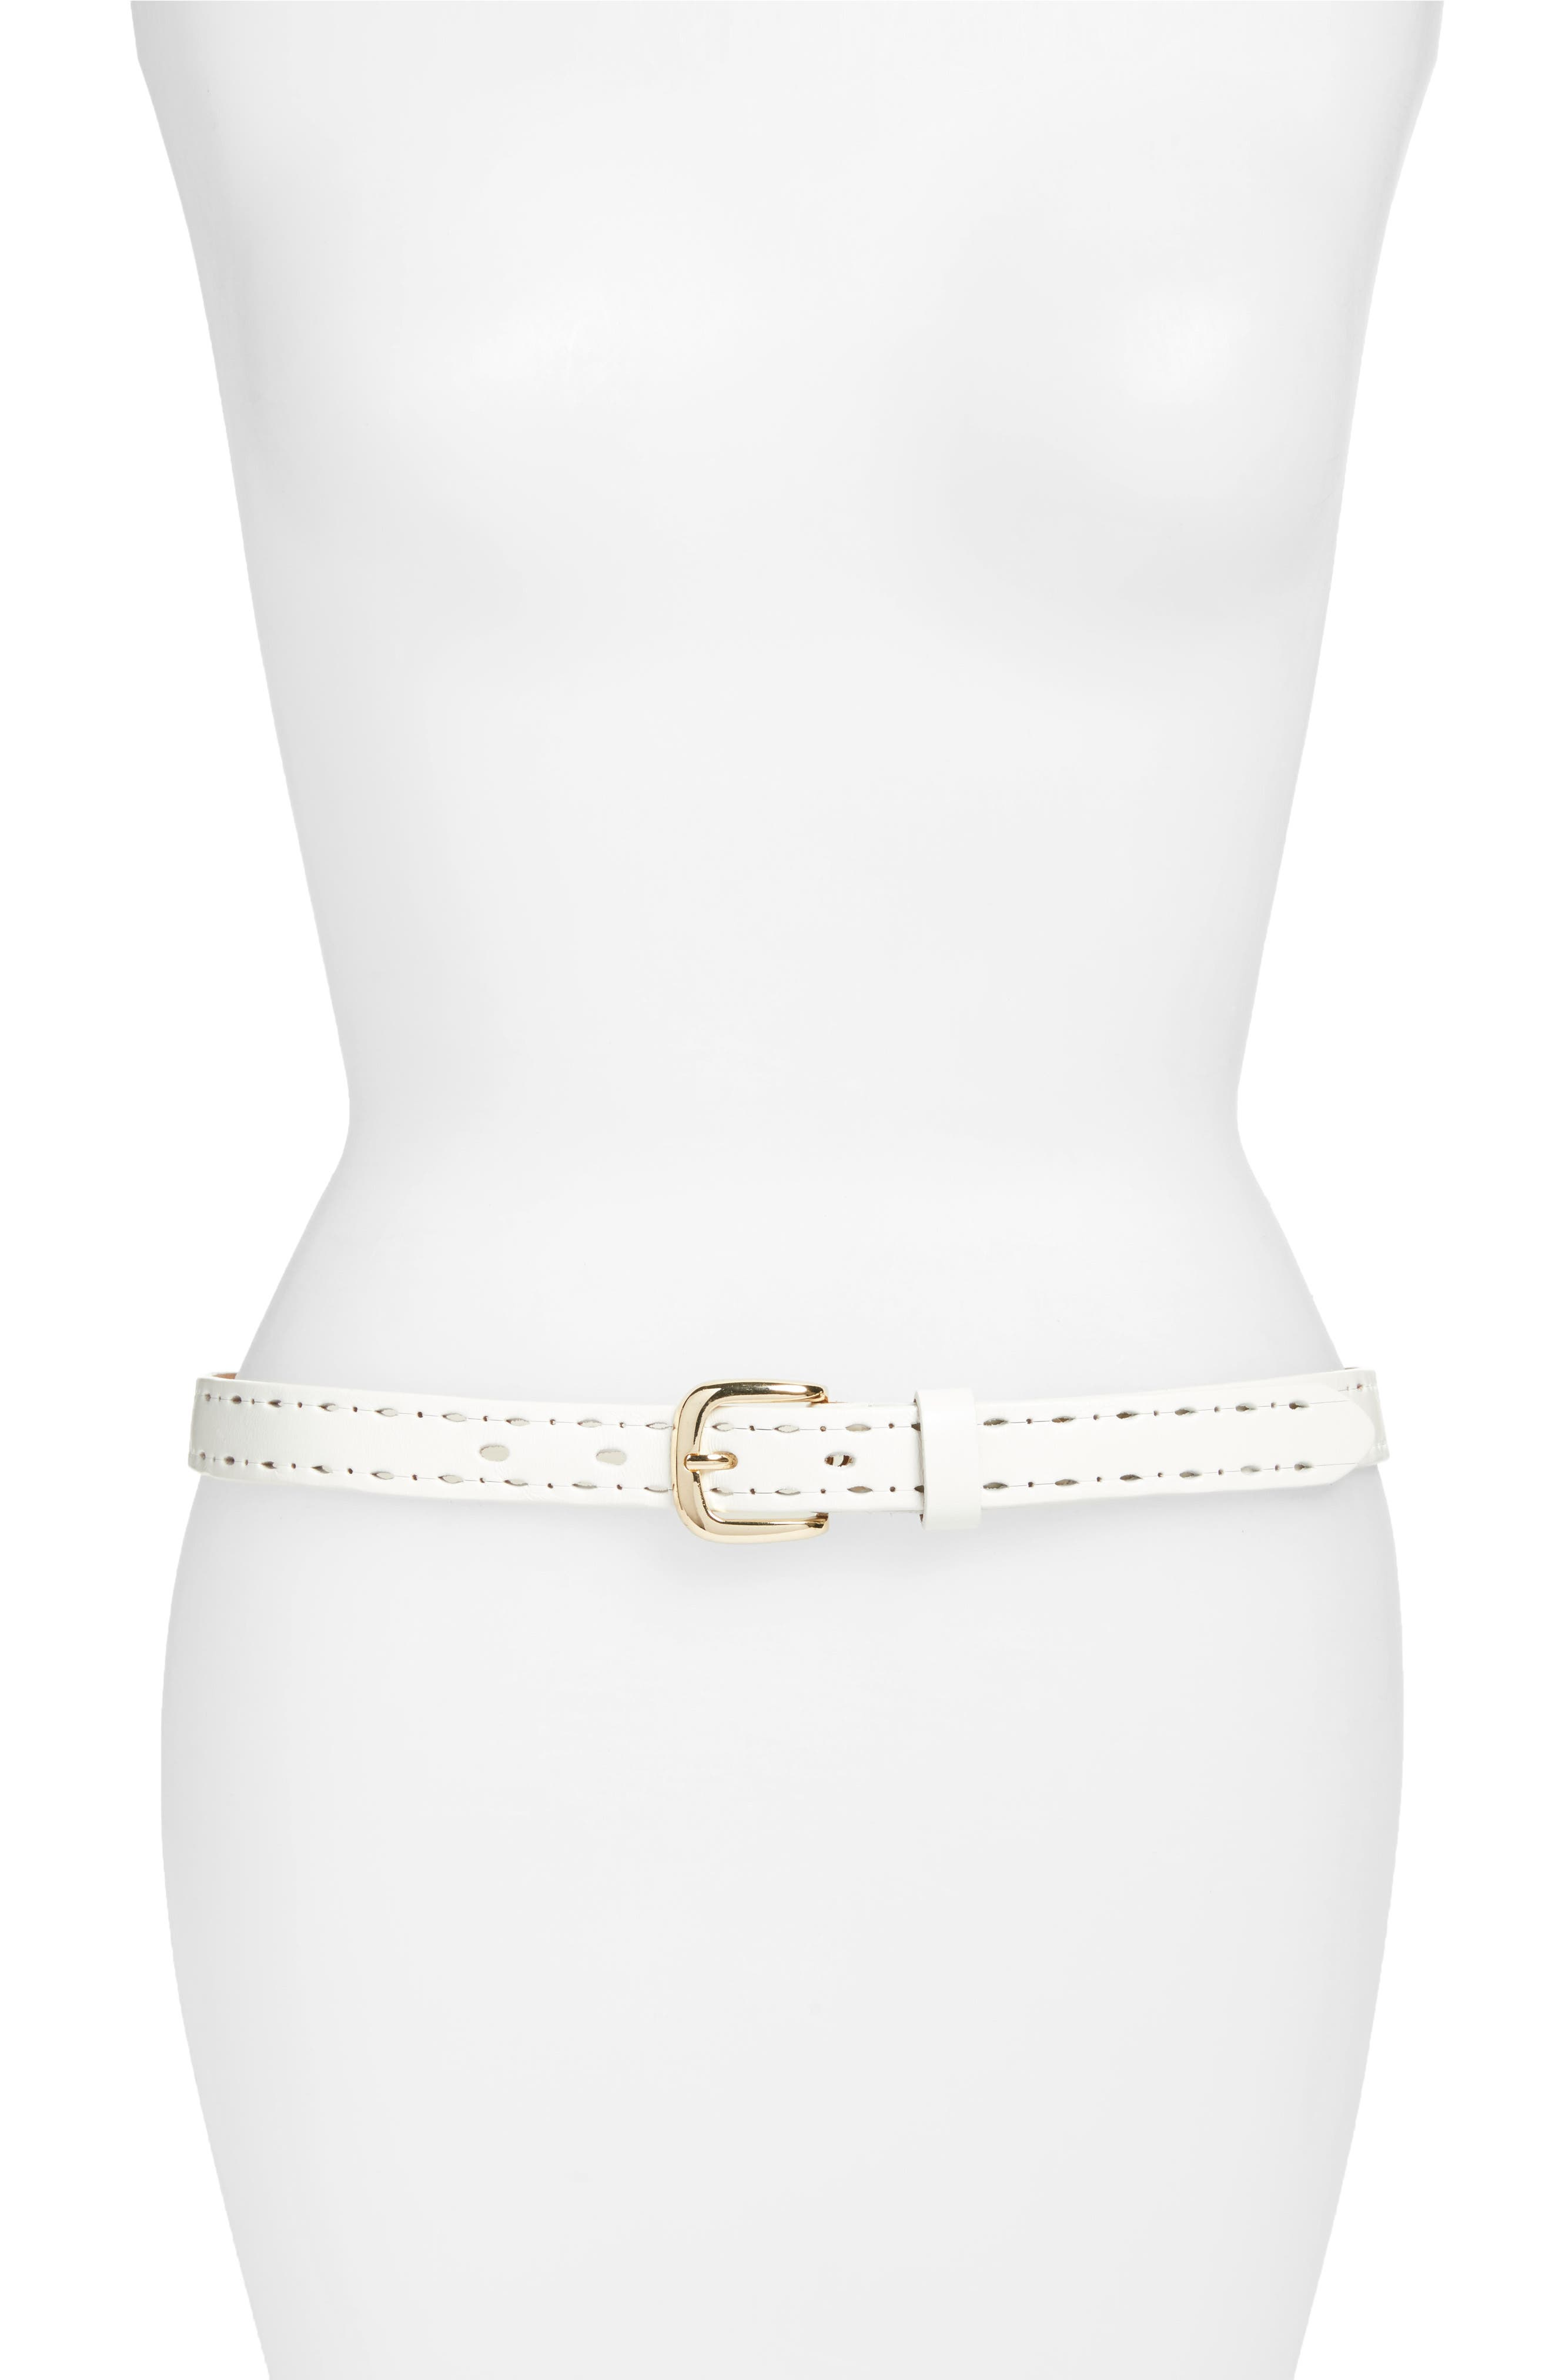 Trevor Perforated Leather Hip Belt,                             Main thumbnail 1, color,                             WHITE